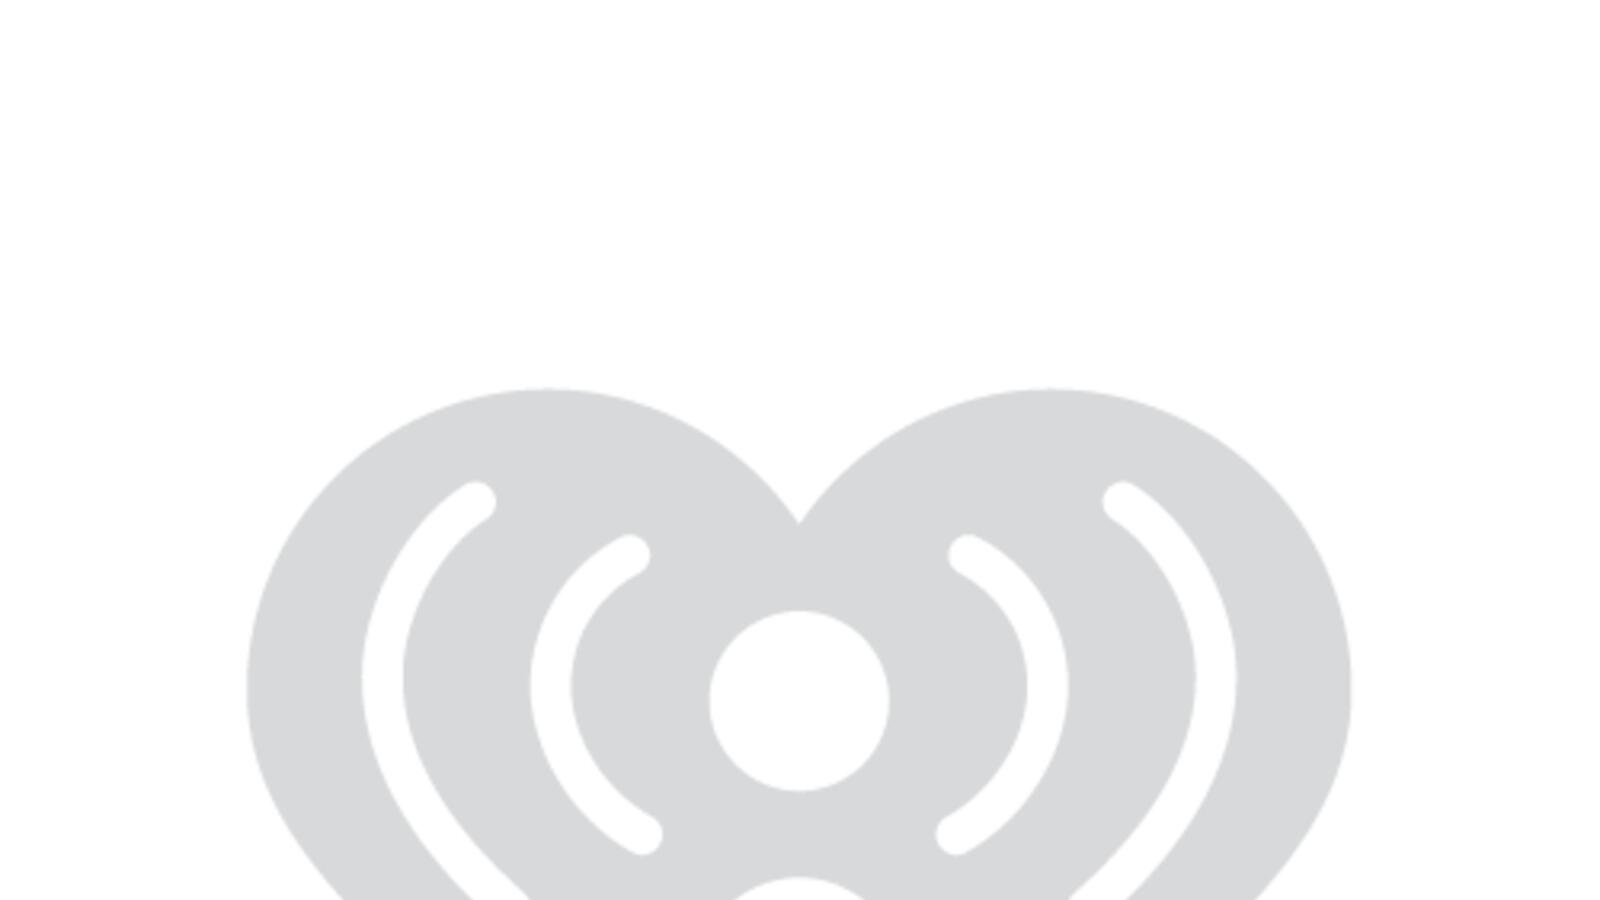 How NBA Players Should Take a Stand on Refusing COVID-19 Vaccine